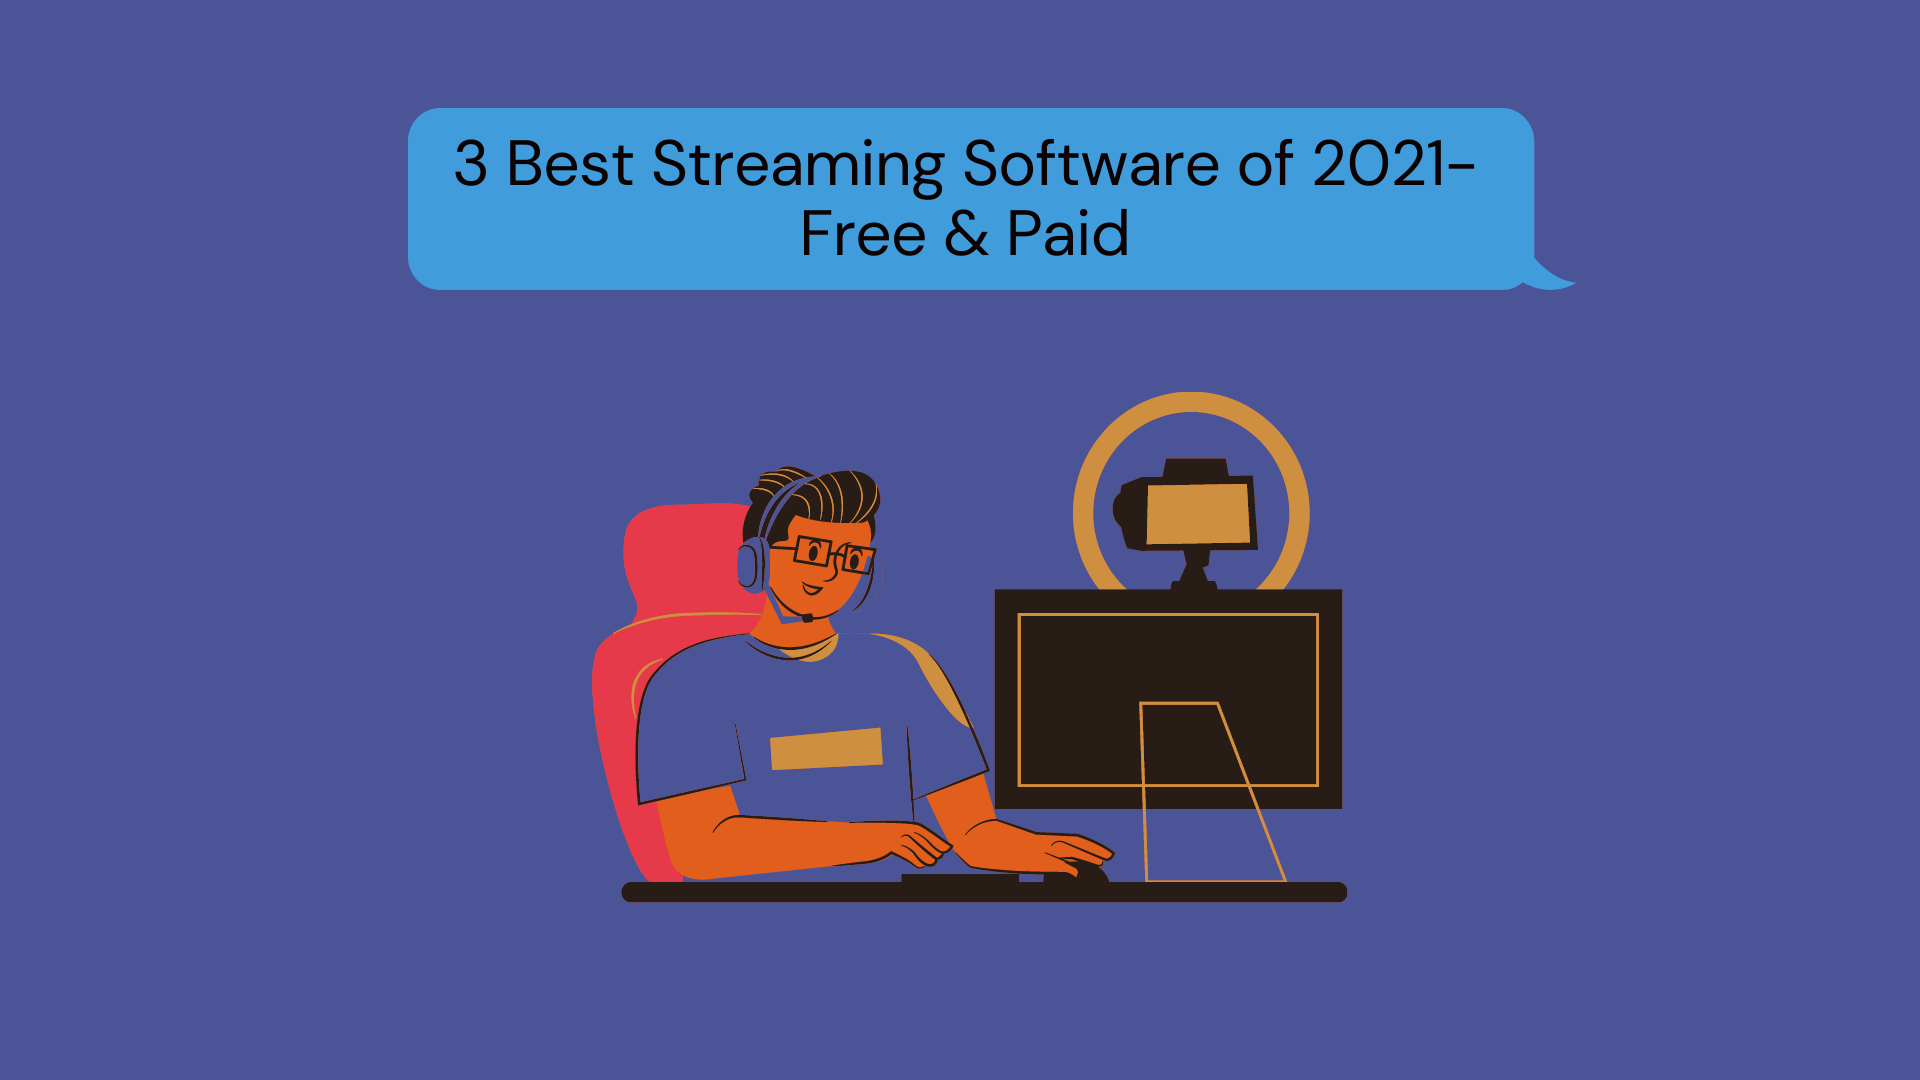 3 Best Streaming Software